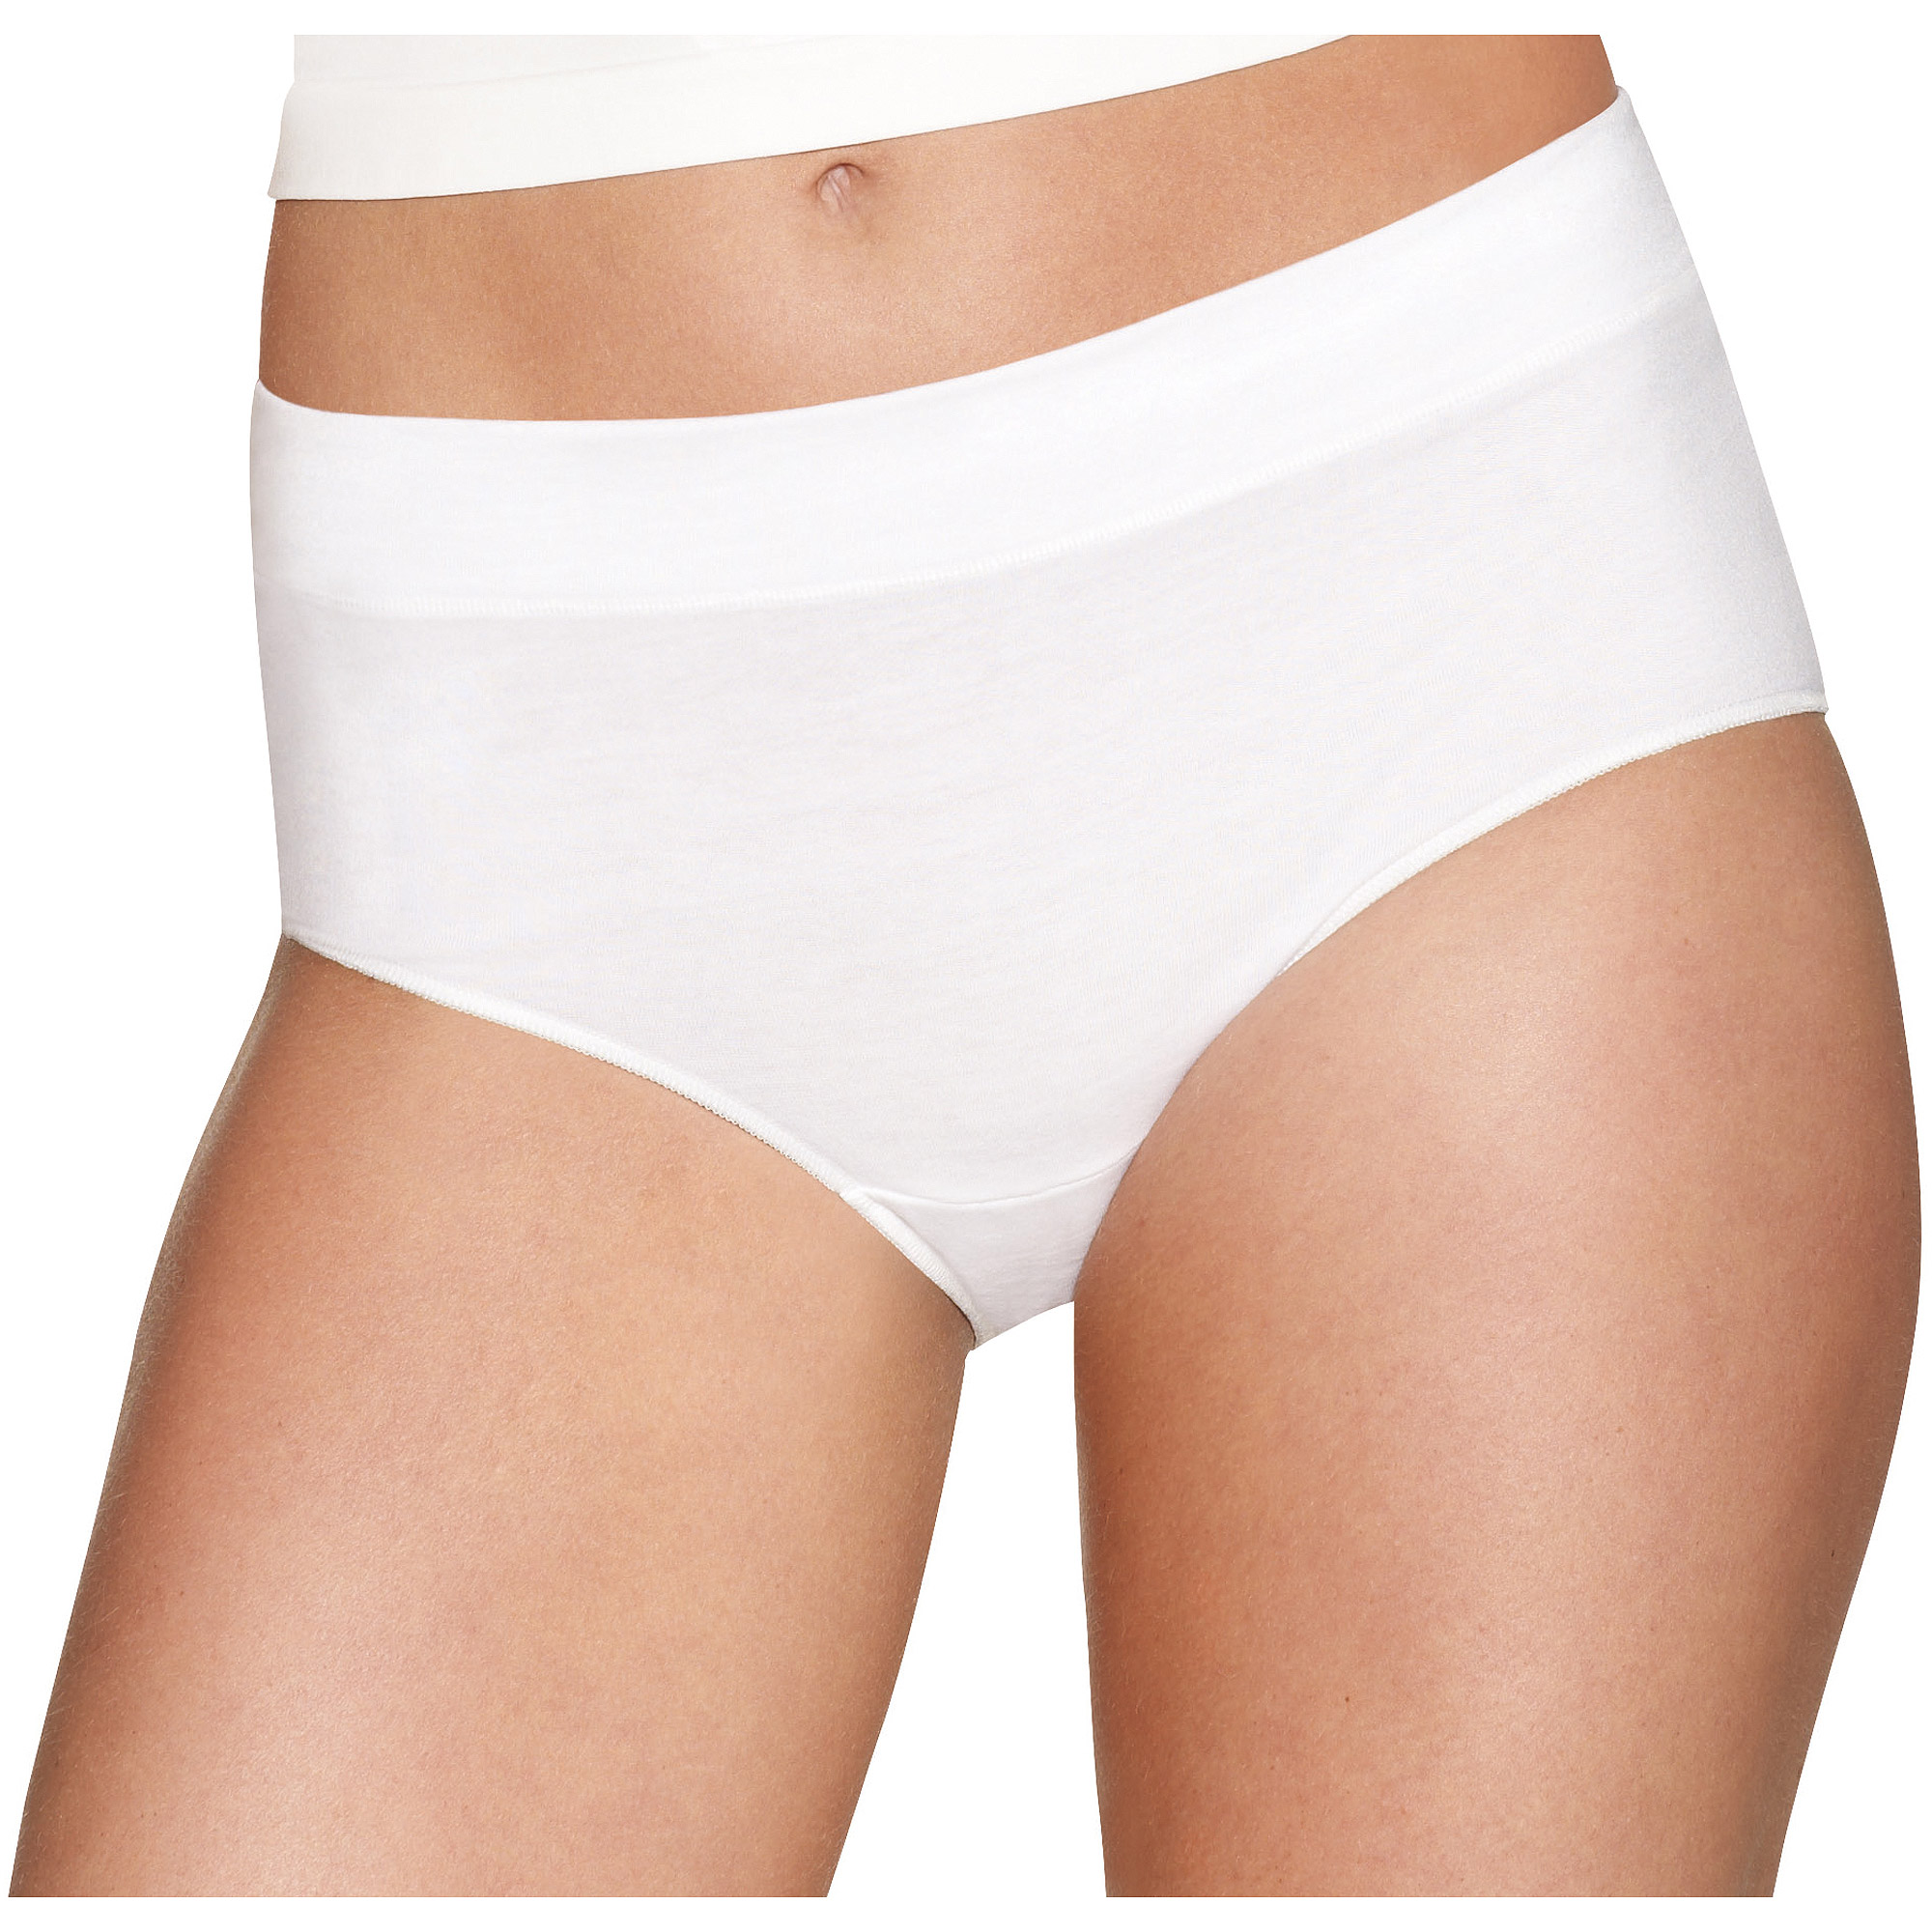 Hanes Women's X-Temp Constant Comfort Modern Brief 3 Pack